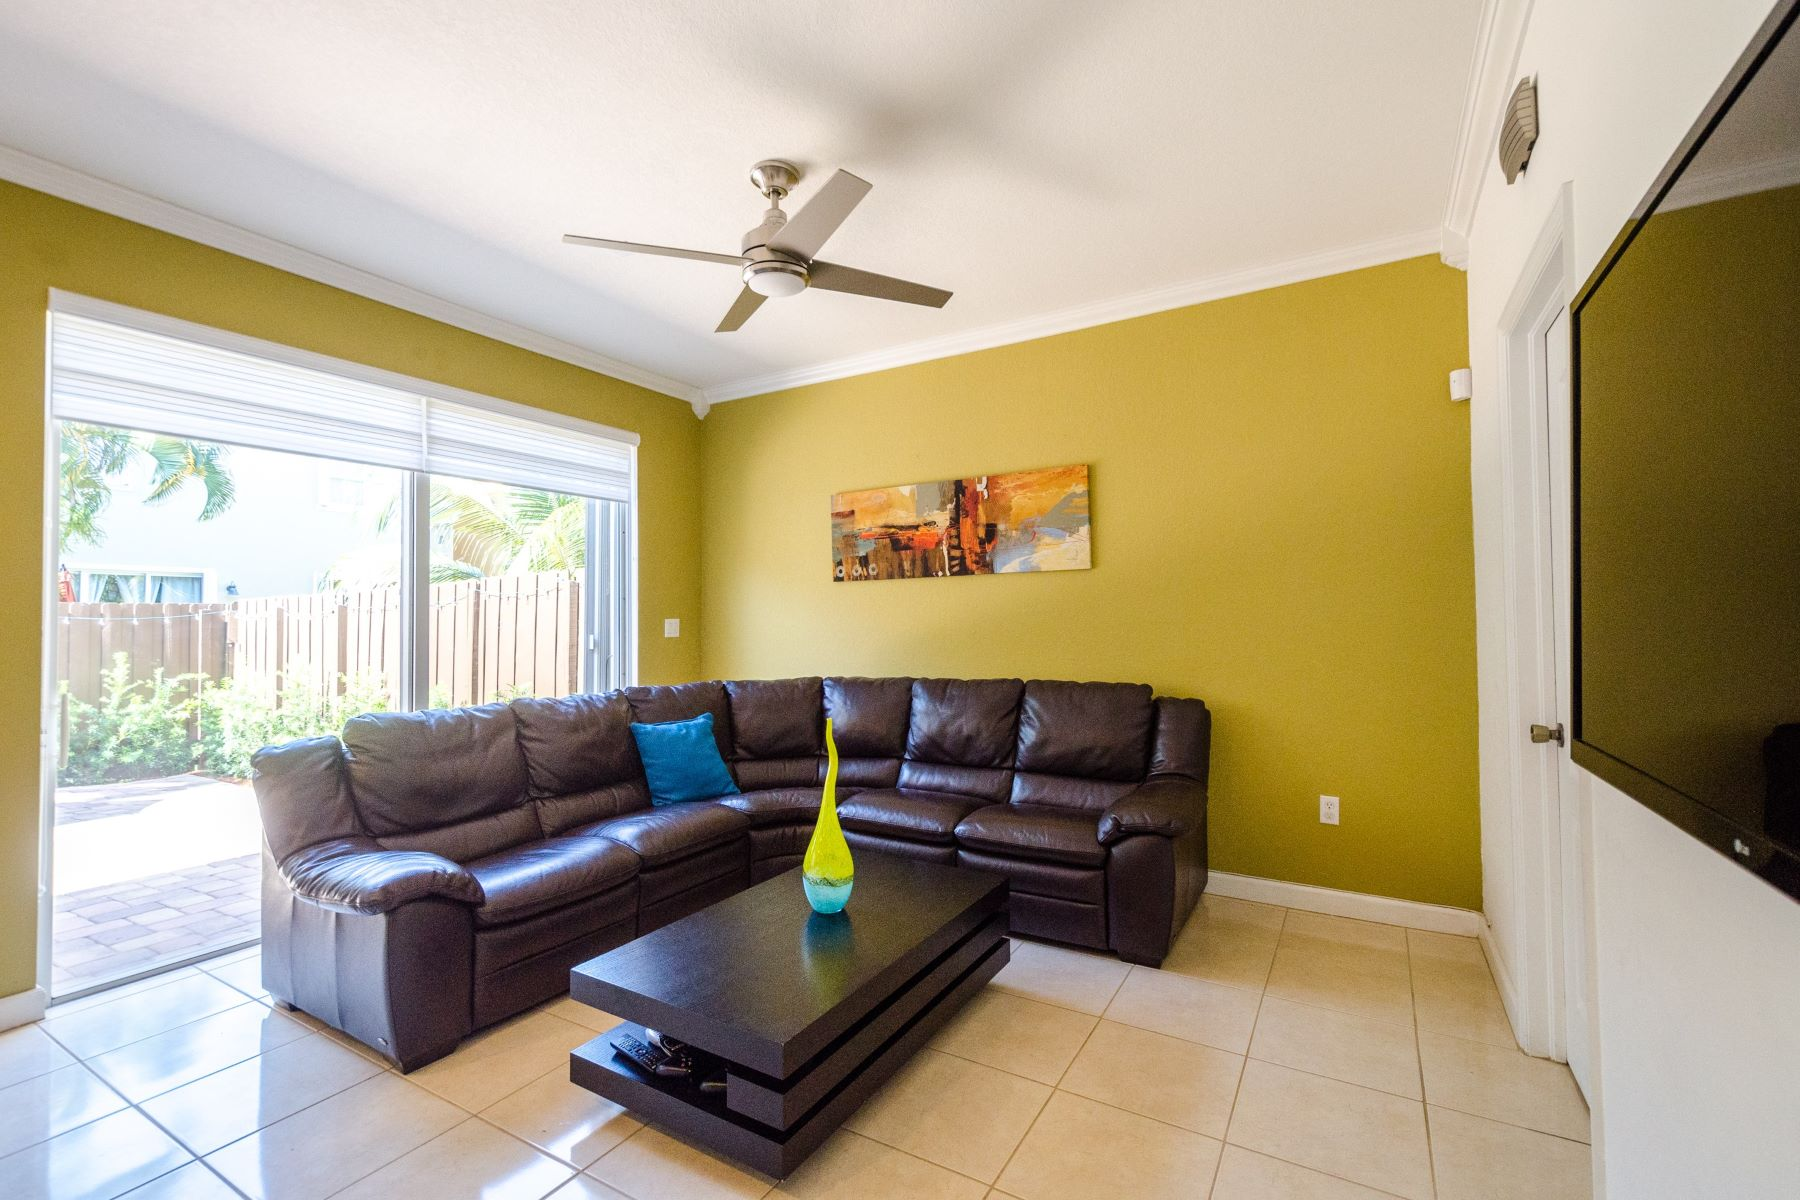 townhouses for Active at 11213 Nw 74th Ter, Doral, FL 11213 Nw 74th Ter Doral, Florida 33178 United States